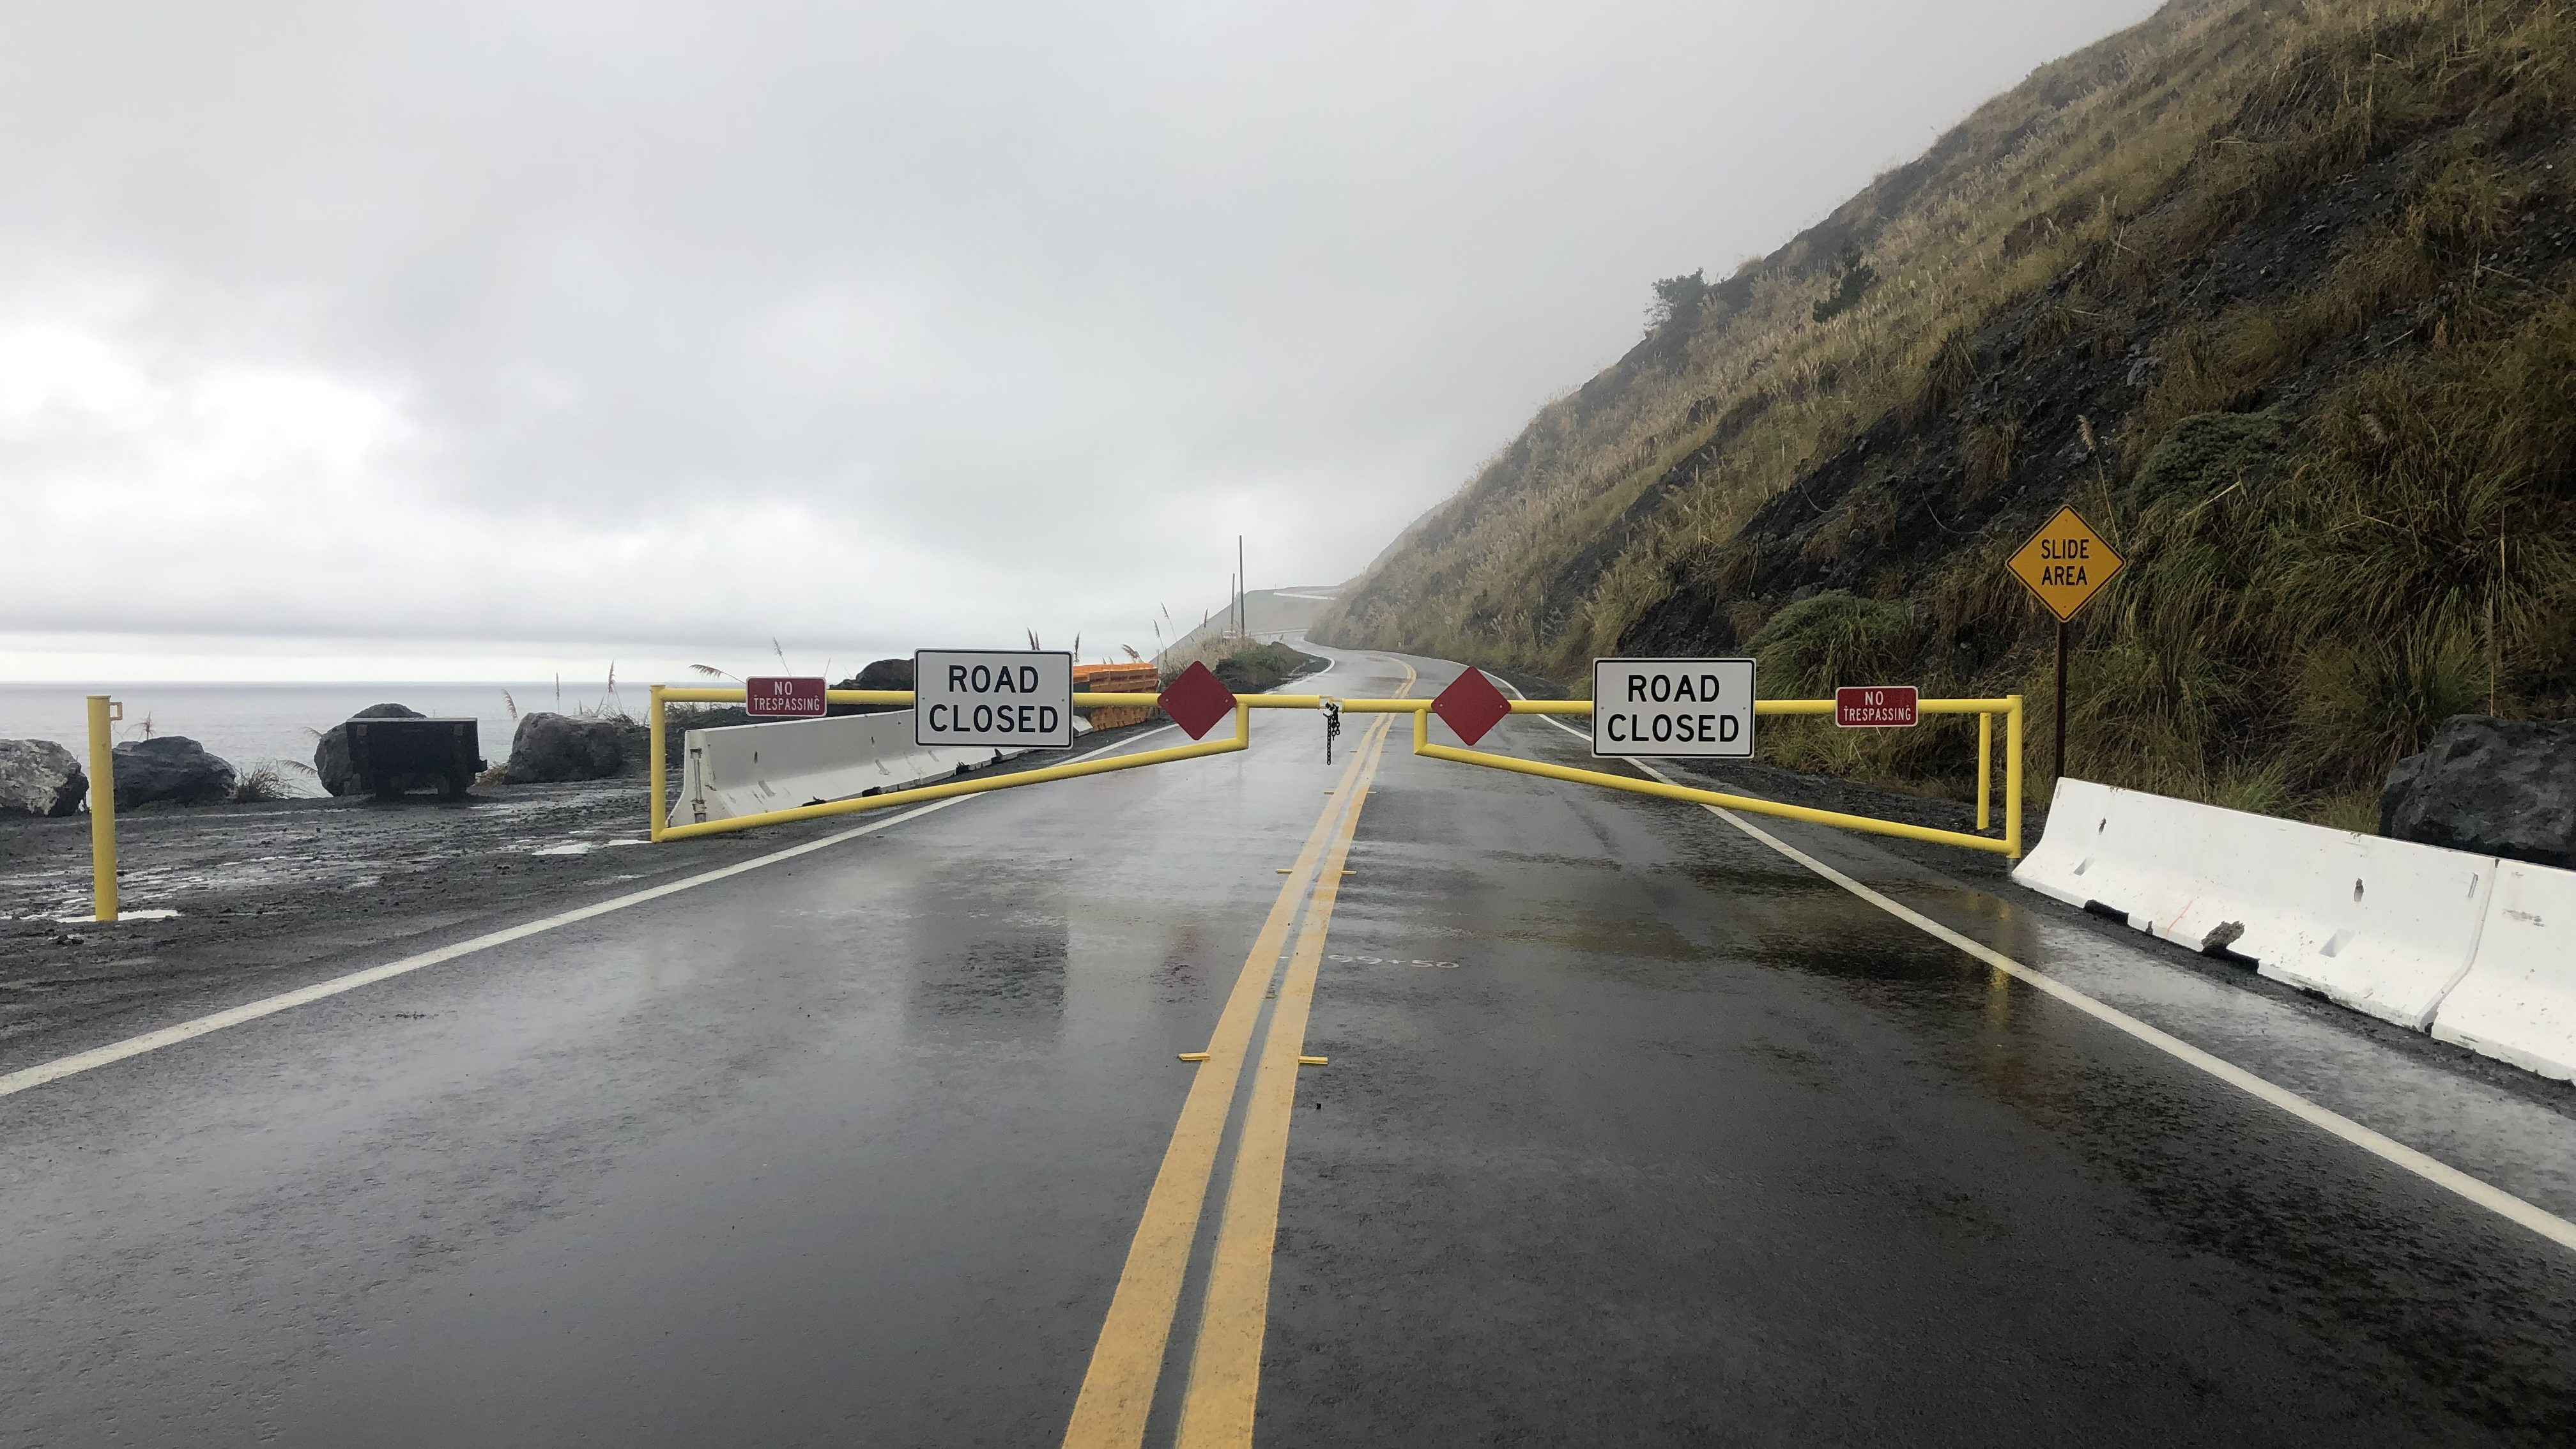 Recently-installed gates prevent traffic from driving through the Mud Creek Slide area. (KSBY photo)